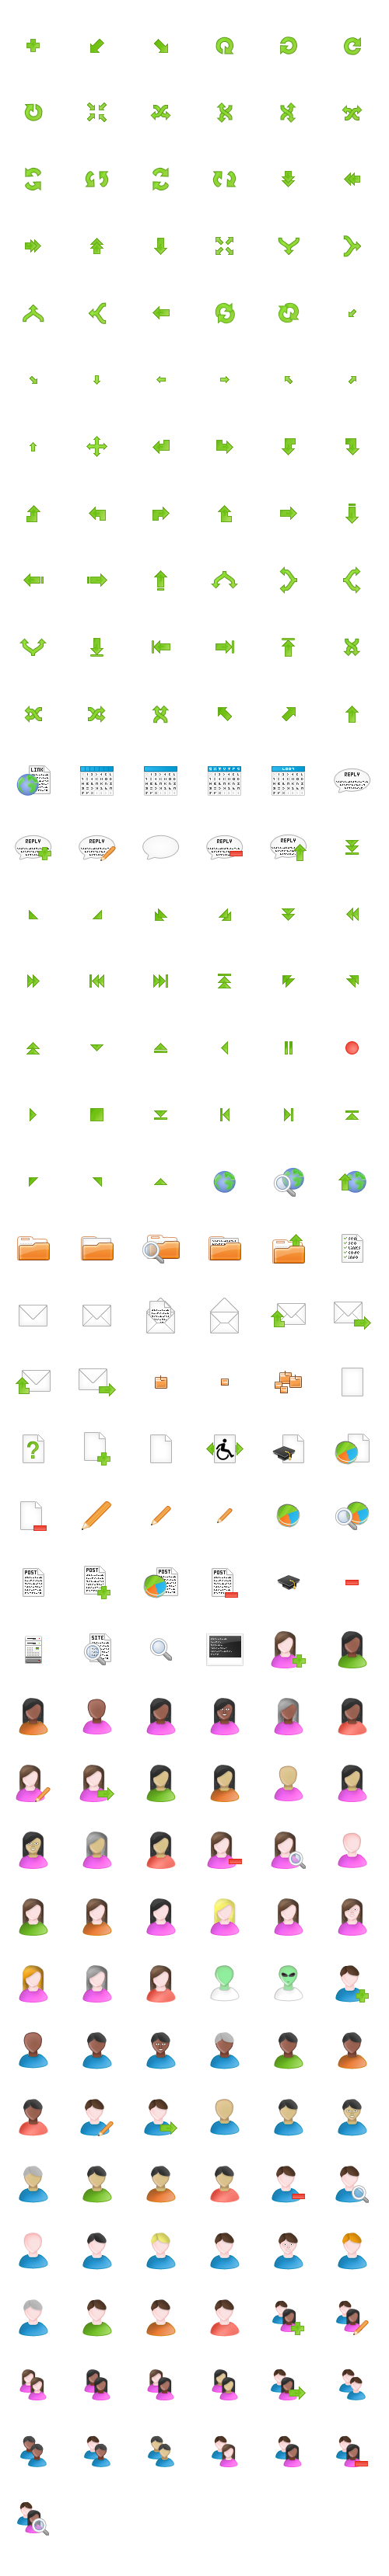 sem_labs_icon_pack02